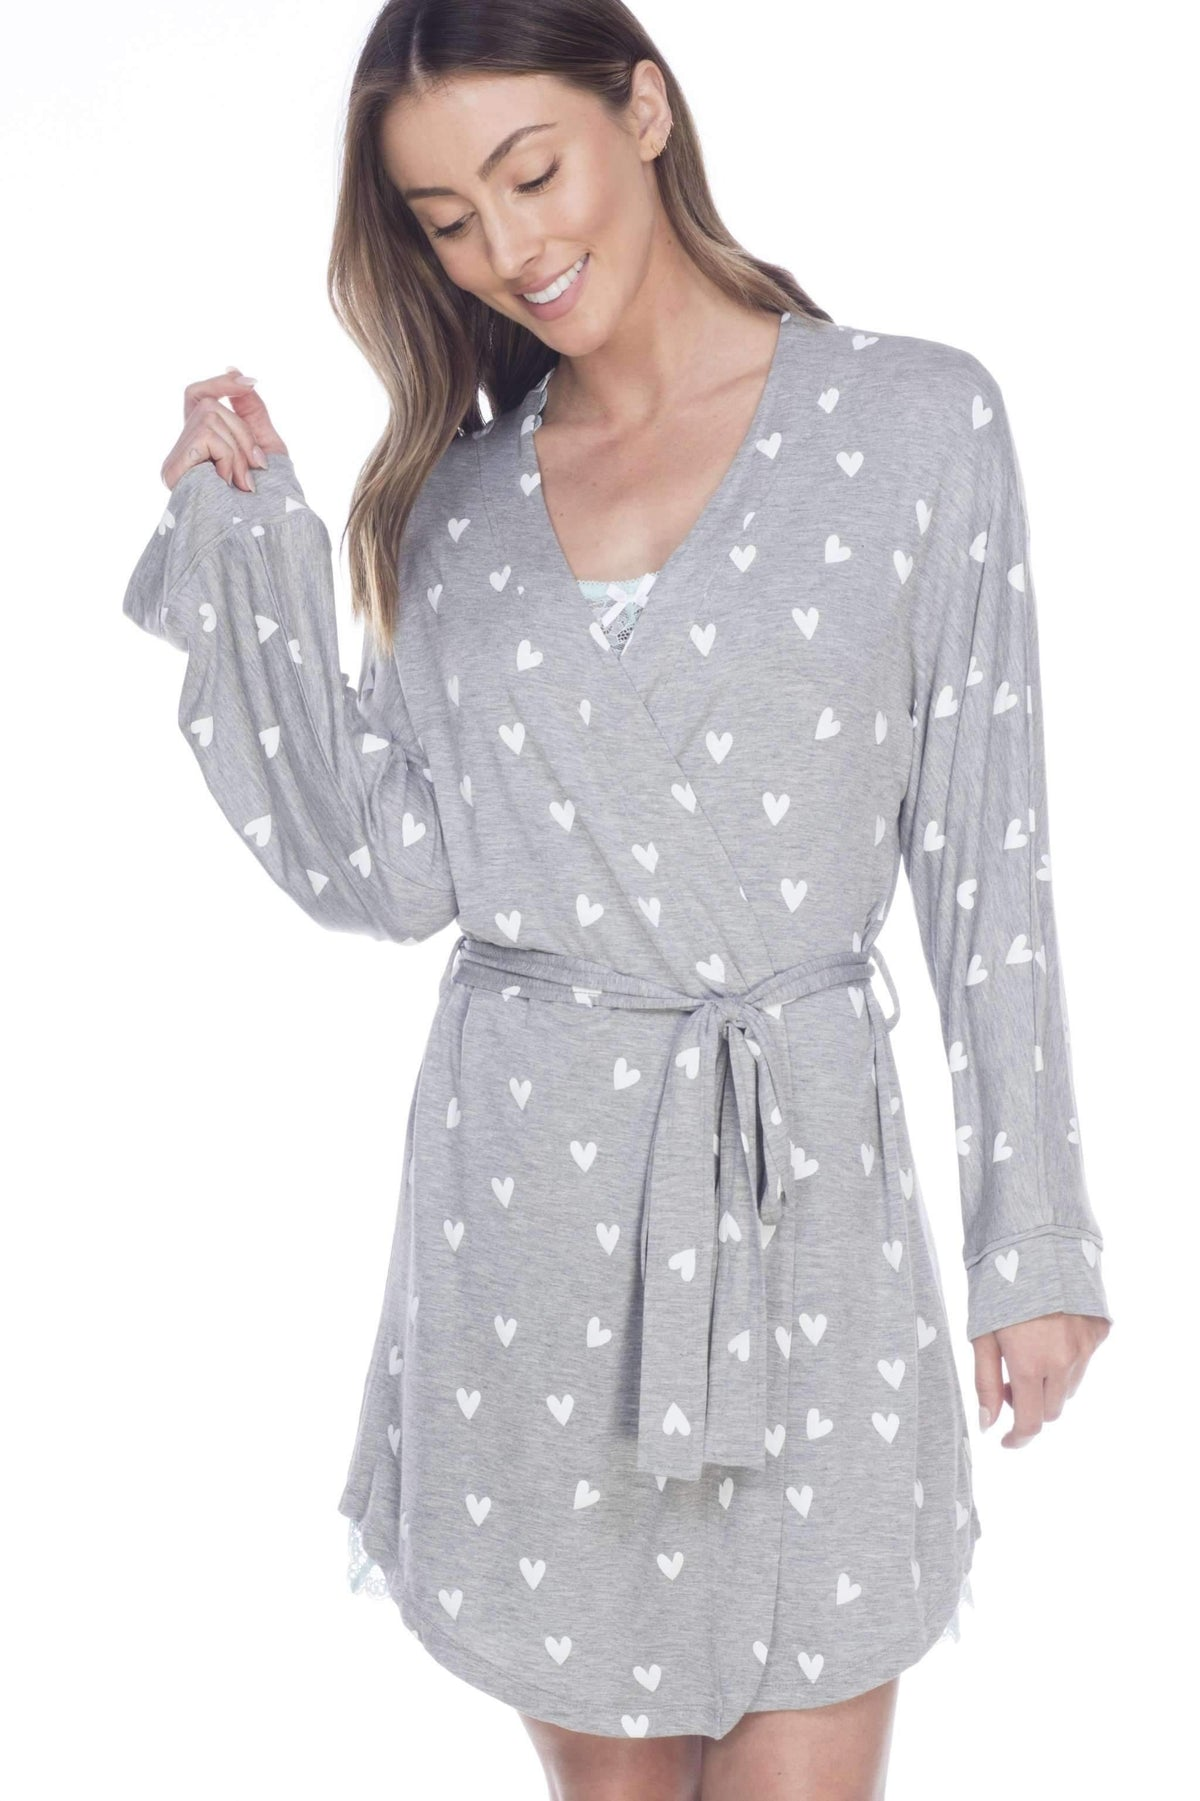 All American Rayon Robe-Sleepwear-Honeydew Intimates-Heather Grey Hearts-Small-Honeydew Intimates